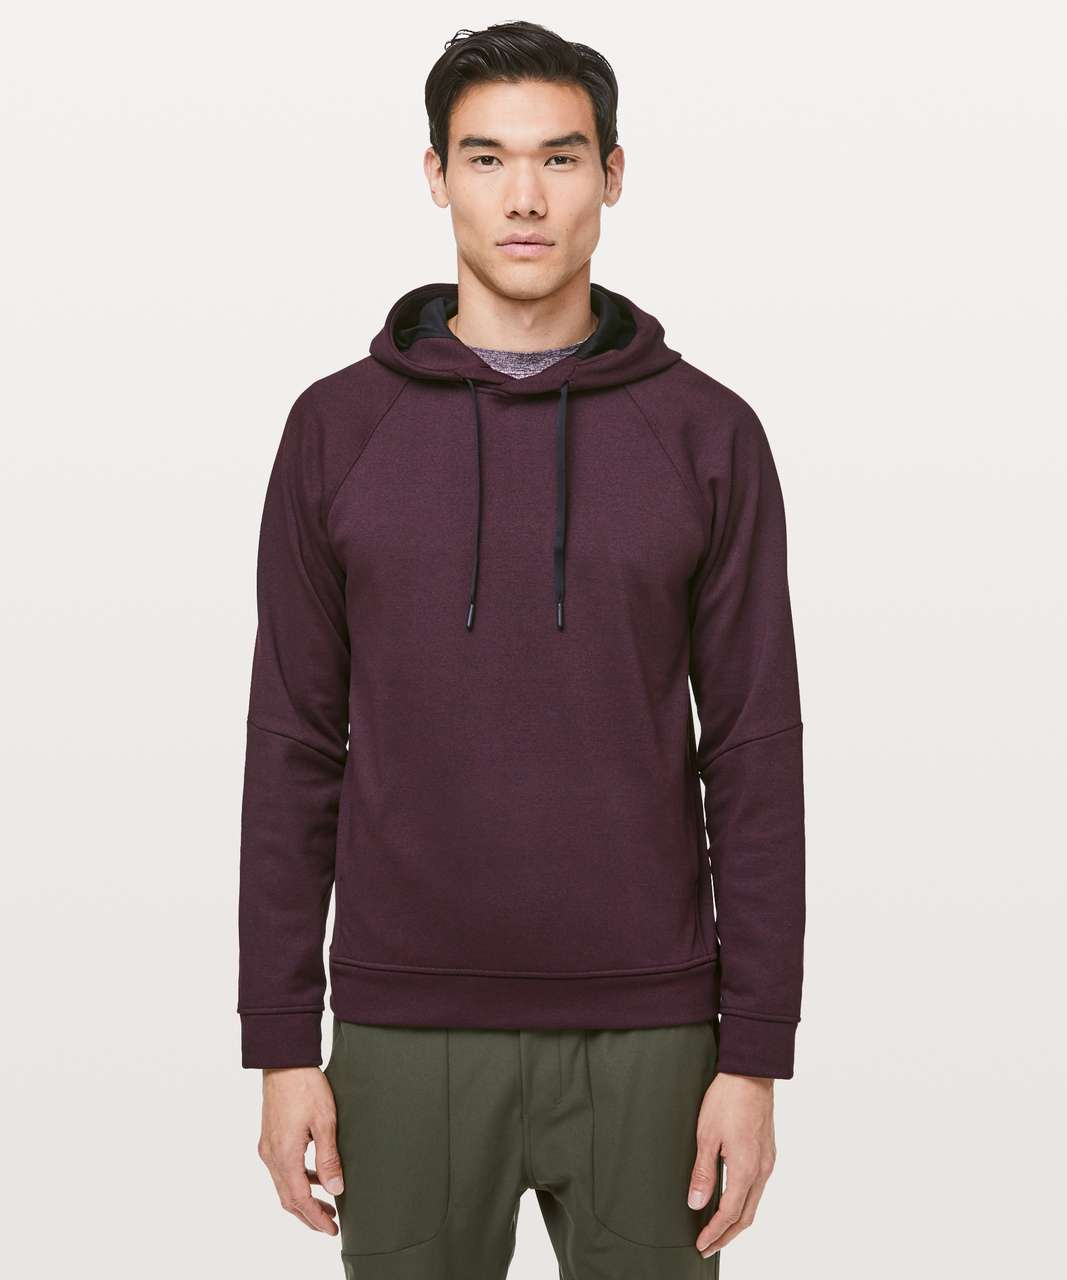 Lululemon City Sweat Pullover Hoodie *Thermo - Heathered Dark Adobe